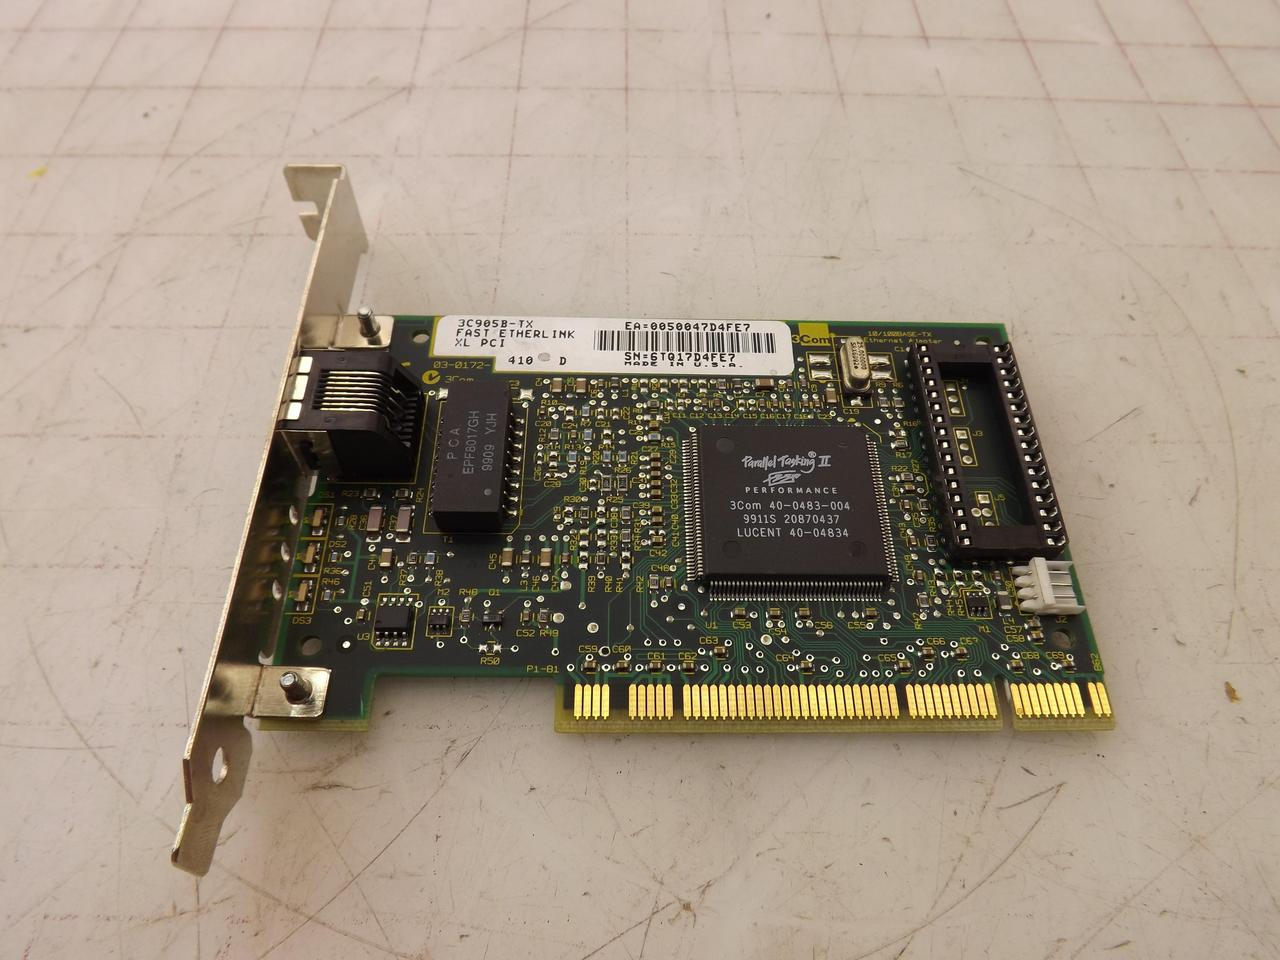 3COM 3C905B-TX 10100BASE-T ADAPTER DRIVERS FOR WINDOWS XP